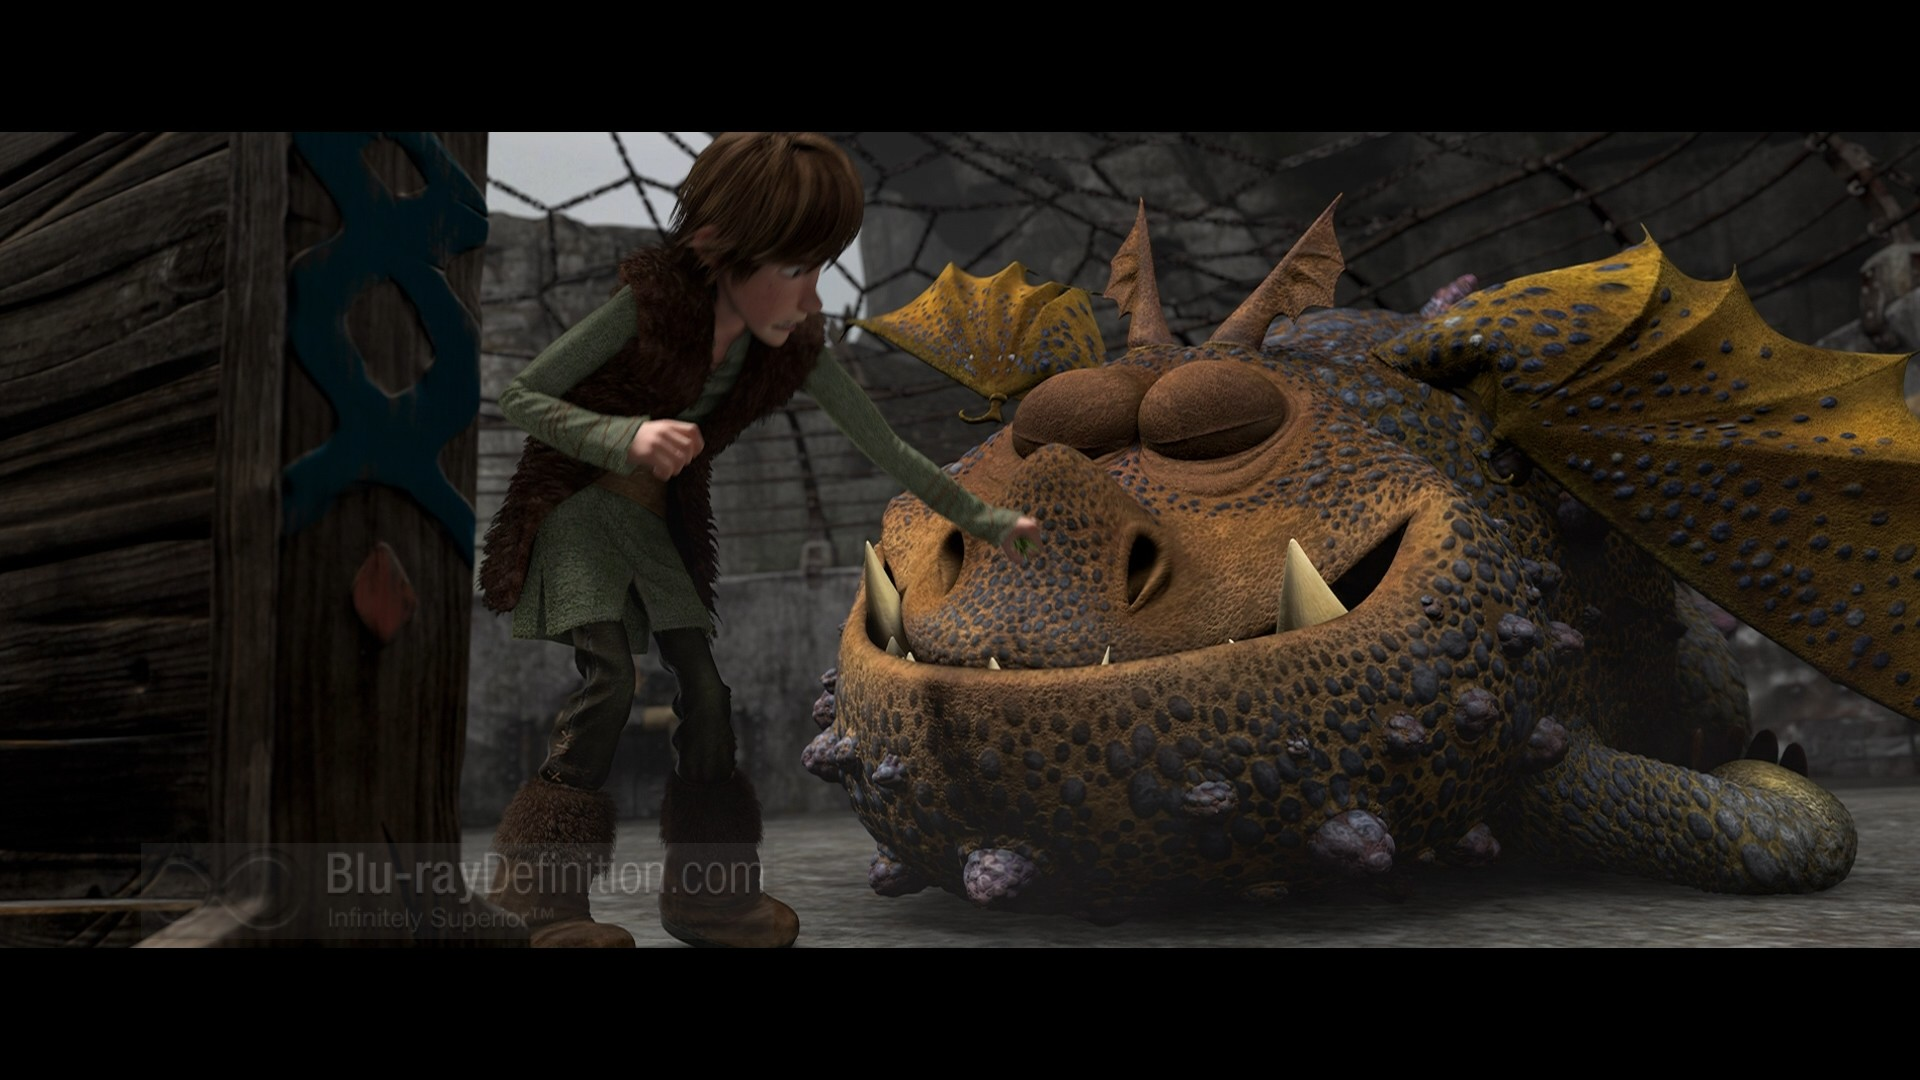 How to Train Your Dragon Blu Ray, How to Train Your Dragon Wallpapers,  Toothless